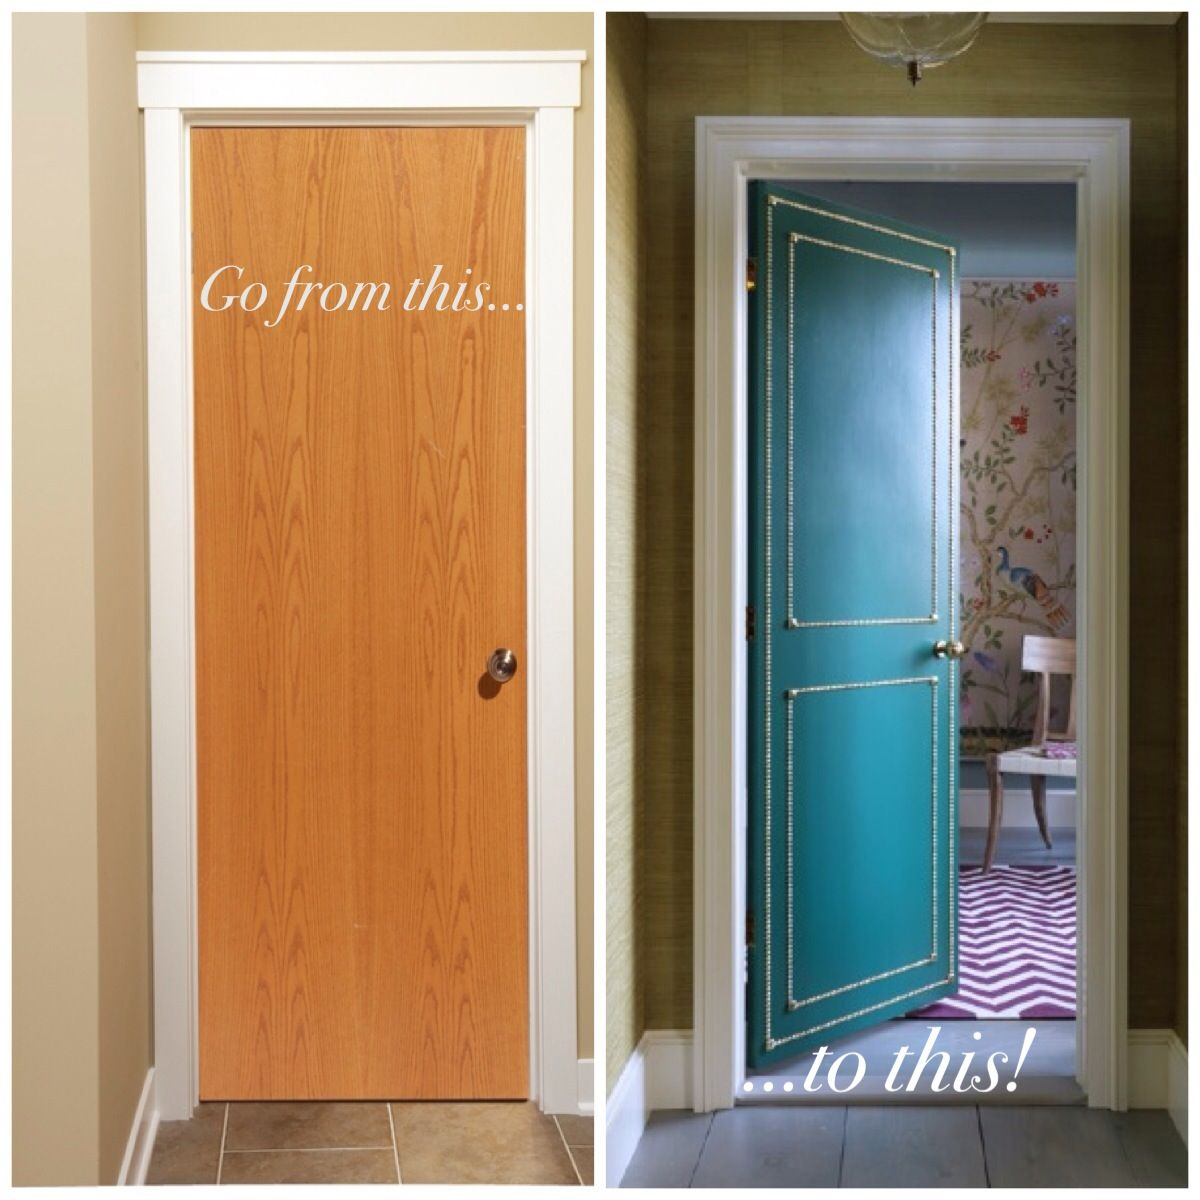 Genial #DIY: Do You Have Boring (ugly) Flat Interior Doors? Why Not Paint Them An  Amazing Color And Add Some Detail With Nailhead Trim And Decorative Tacks?  Via ...